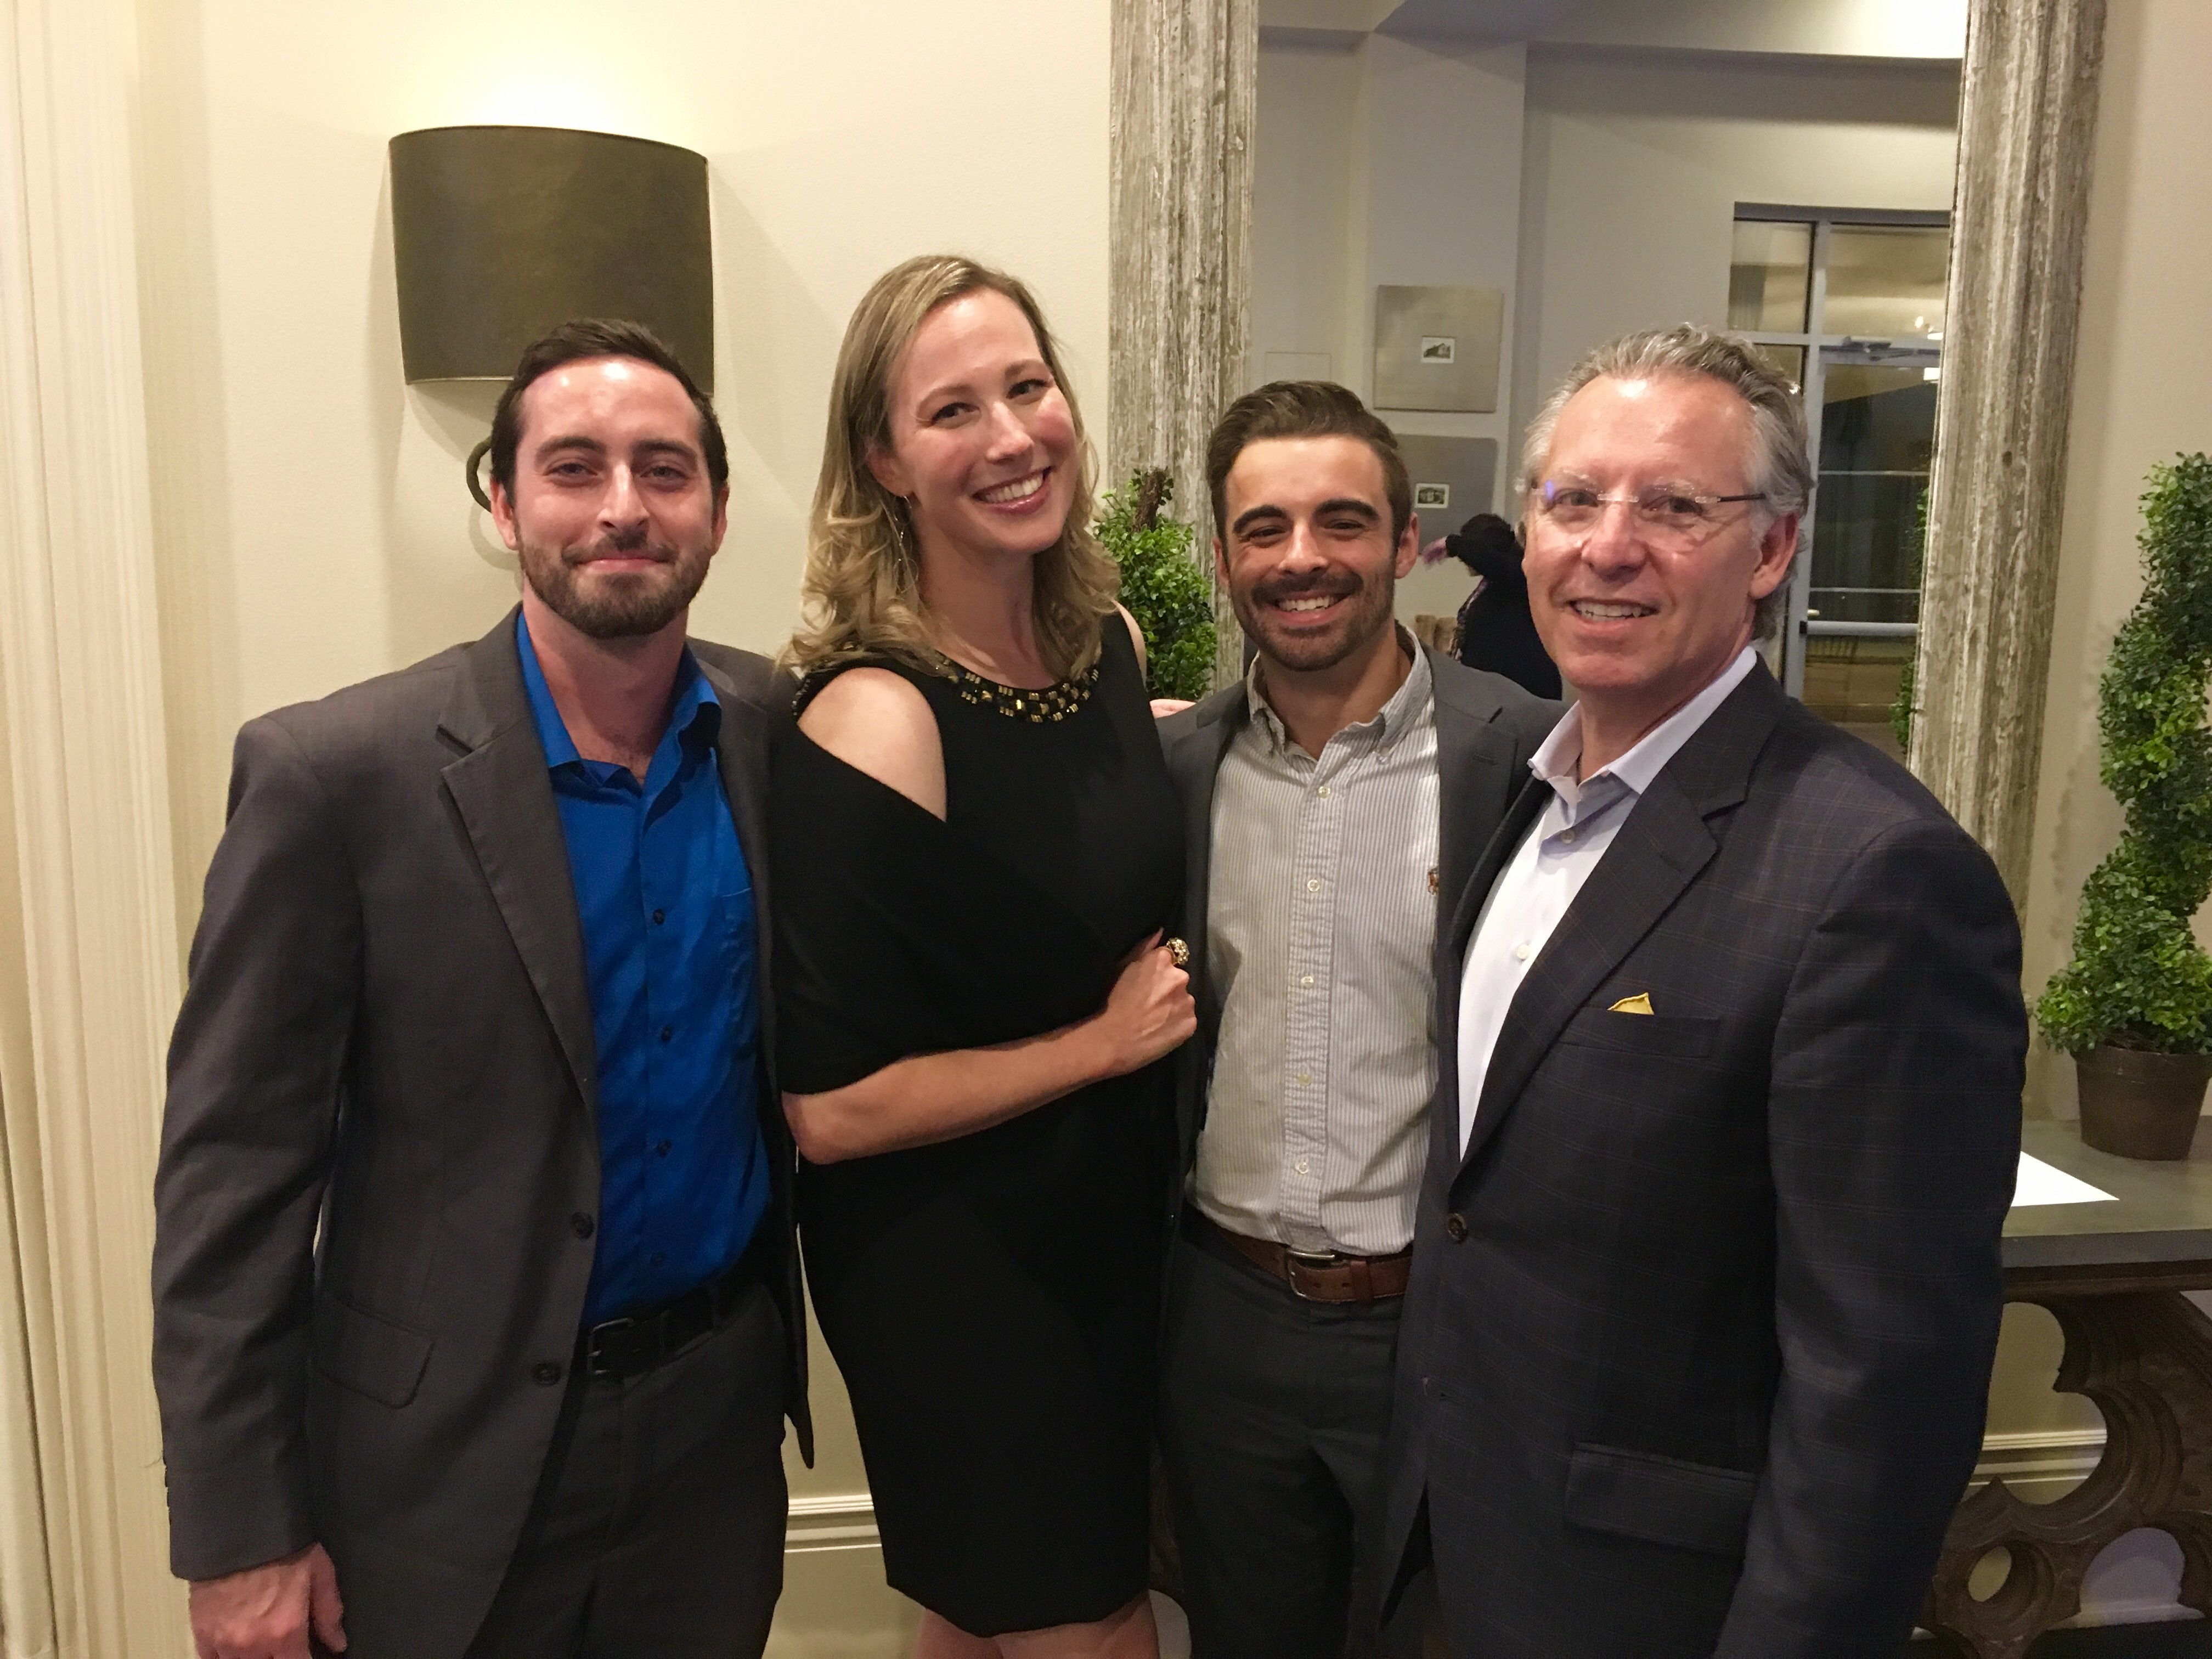 Stirling Properties employees attend the Cystic Fibrosis Foundation's Uncork the Cure